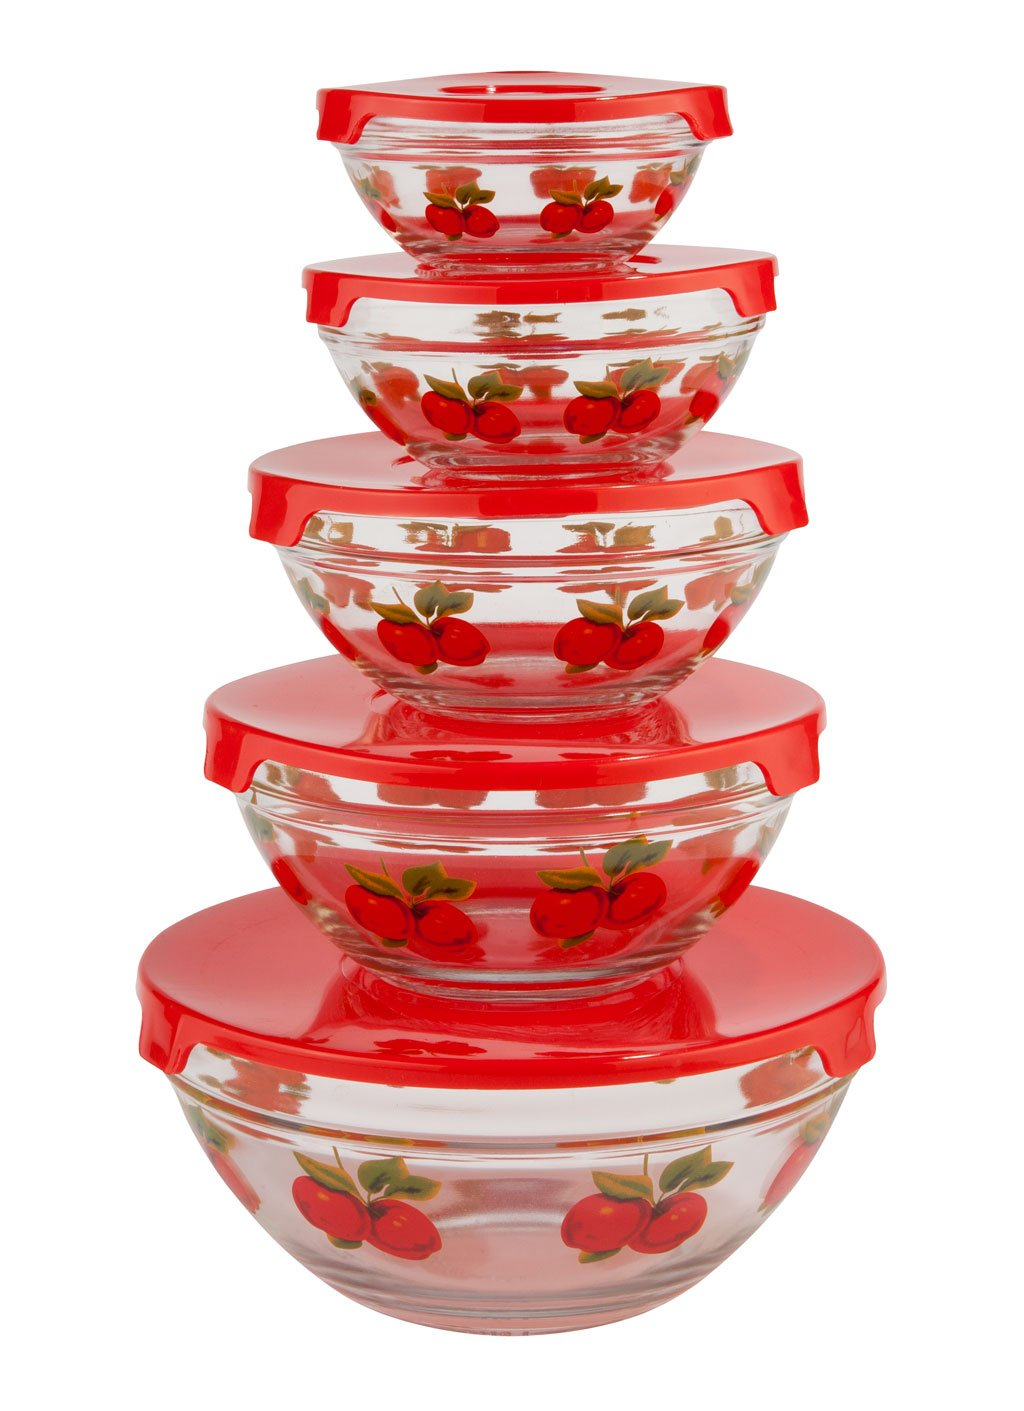 WalterDrake Red Apples Glass Bowls - Set of 5